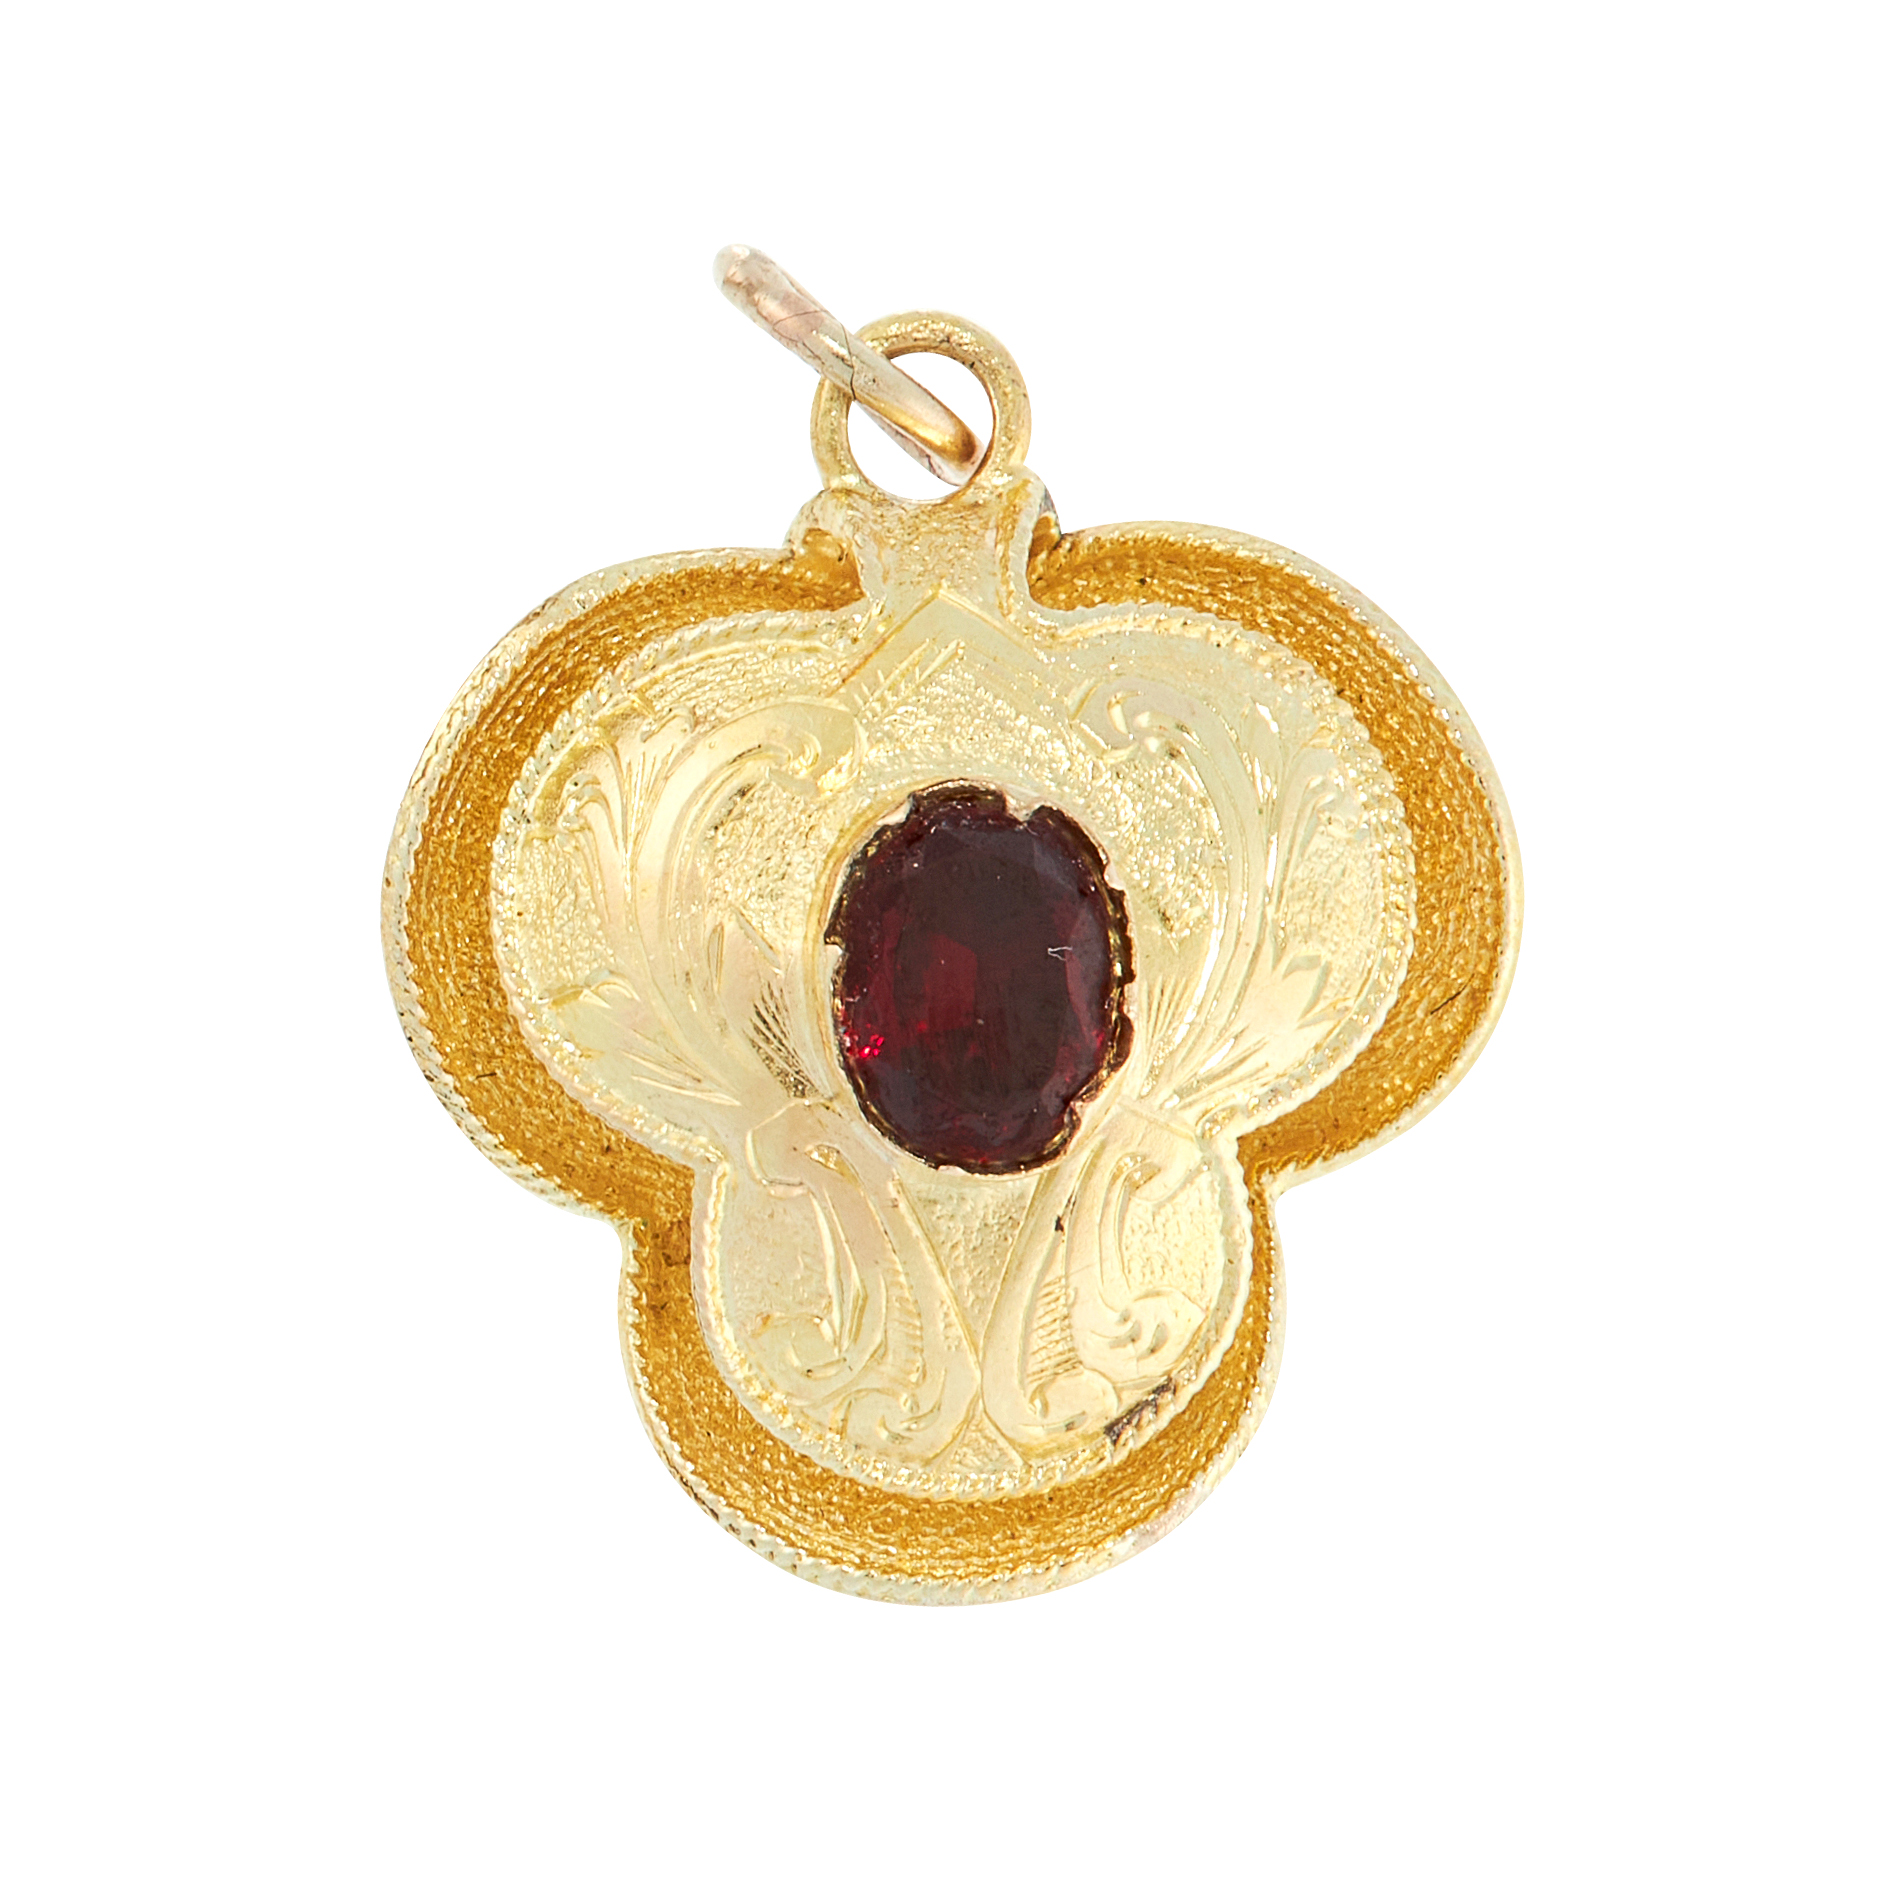 AN ANTIQUE GARNET MOURNING LOCKET PENDANT / CHARM, 19TH CENTURY in high carat yellow gold,